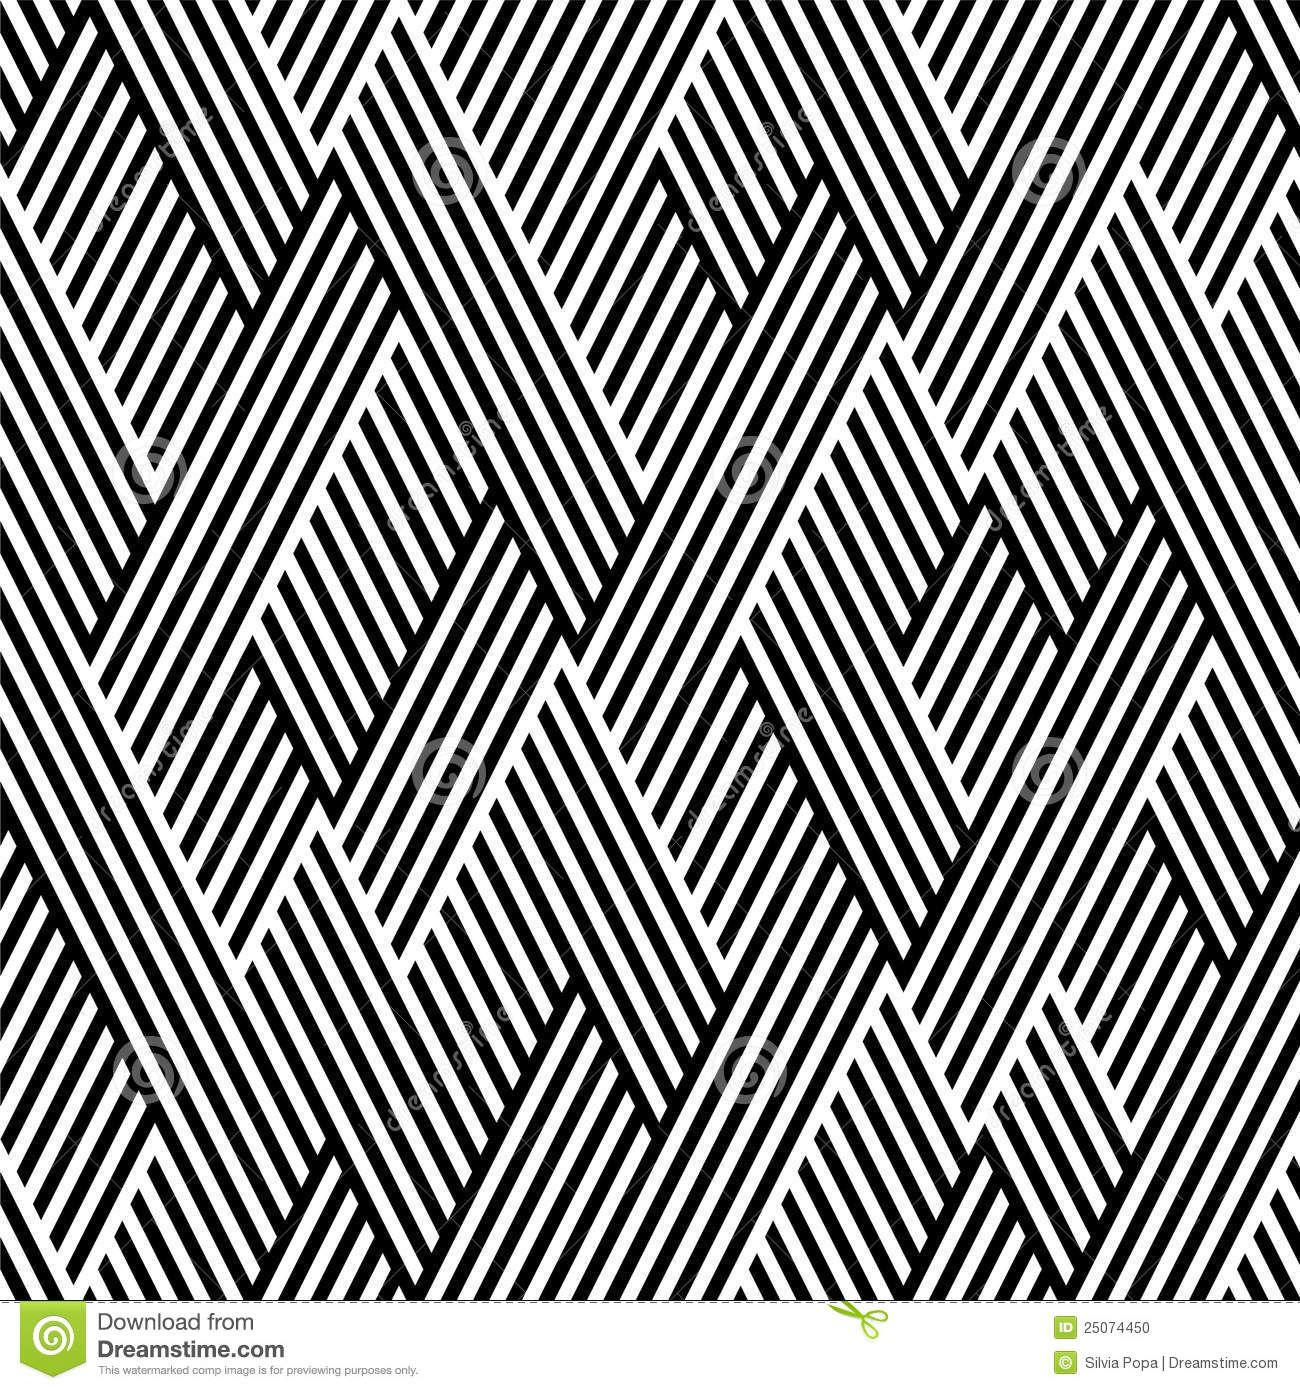 Black And White Line Designs : Fabric pattern bw on pinterest op art islamic and